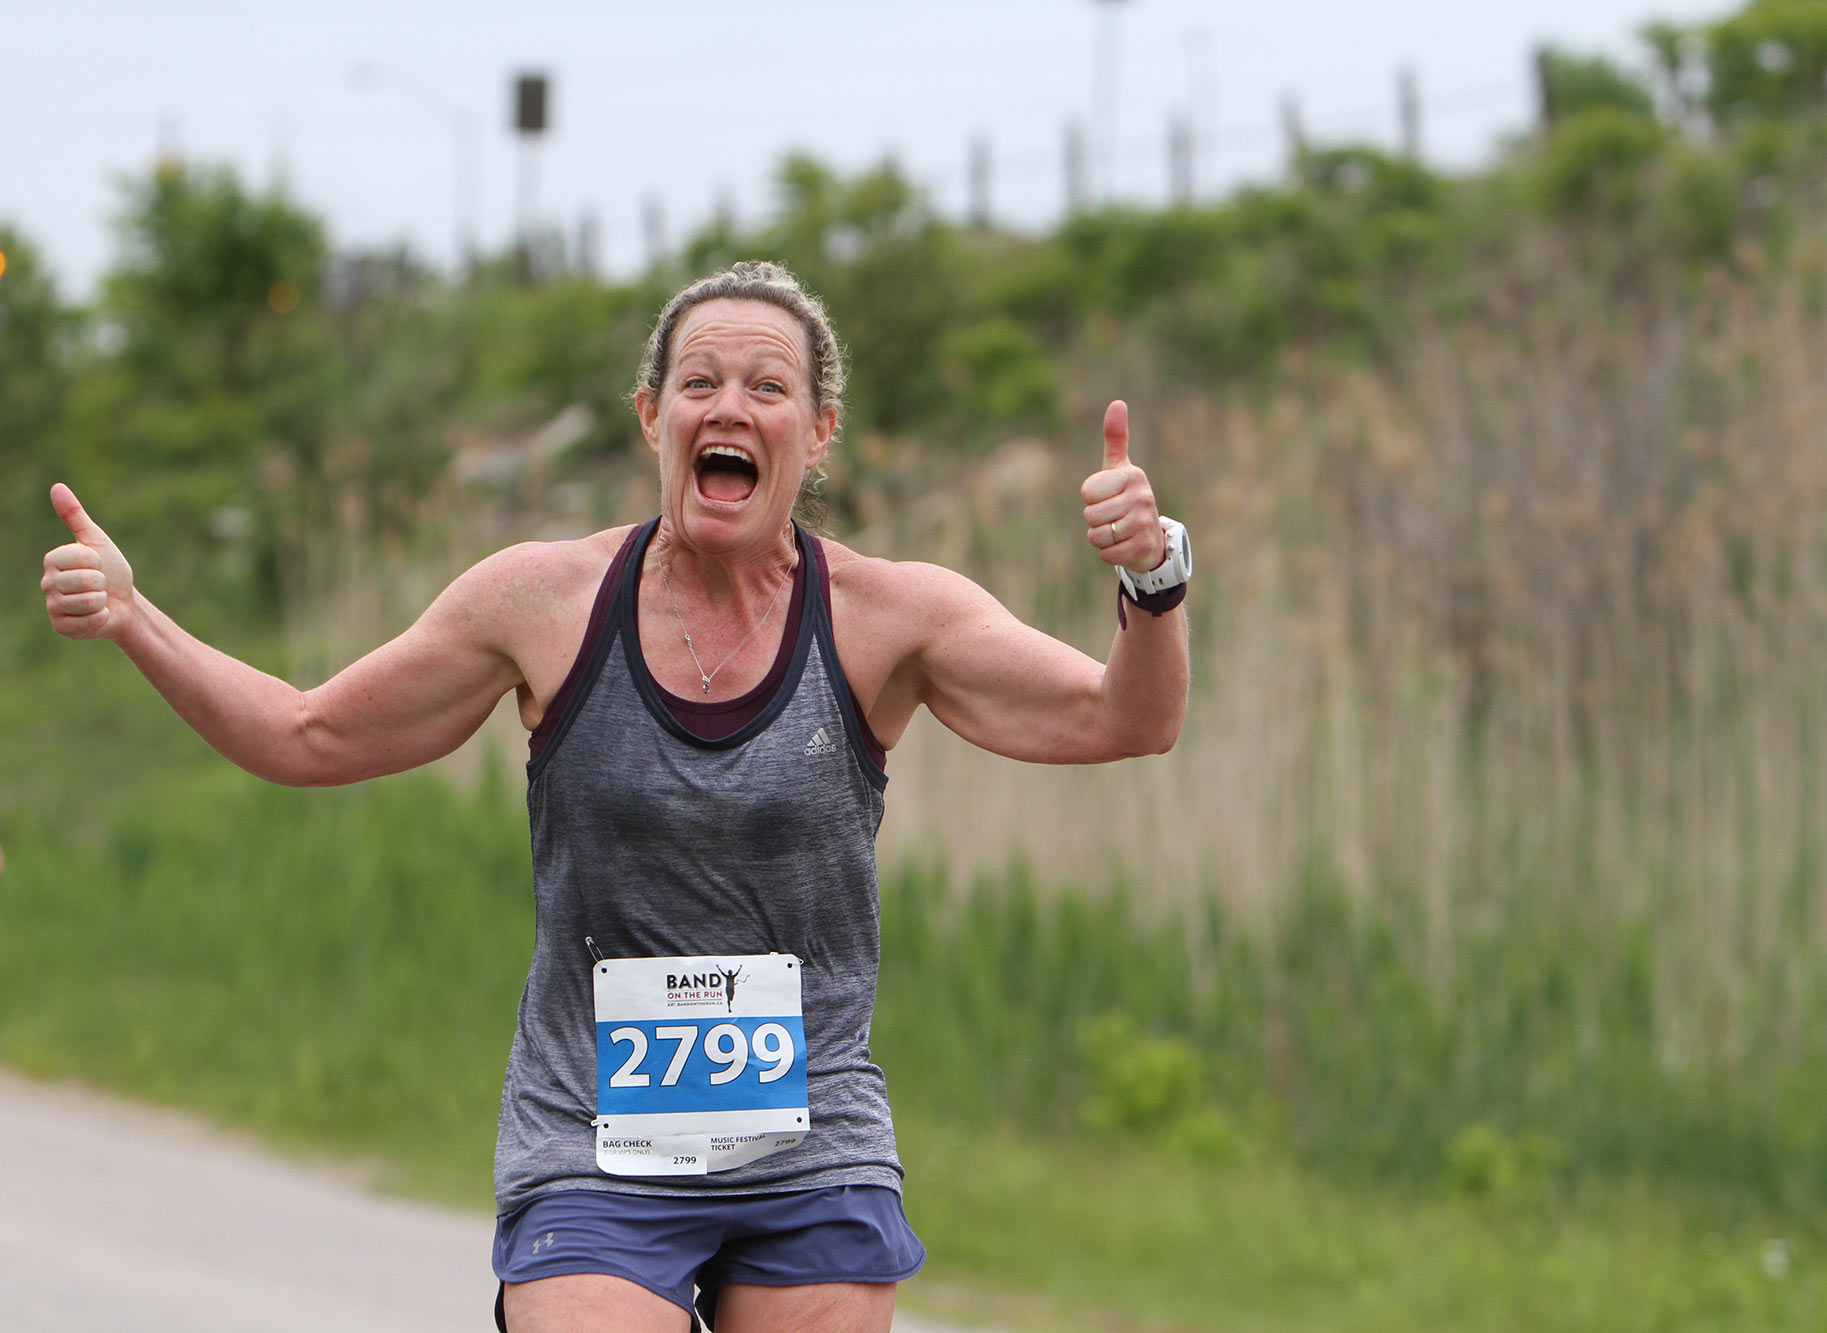 The most fun you will have at a running event